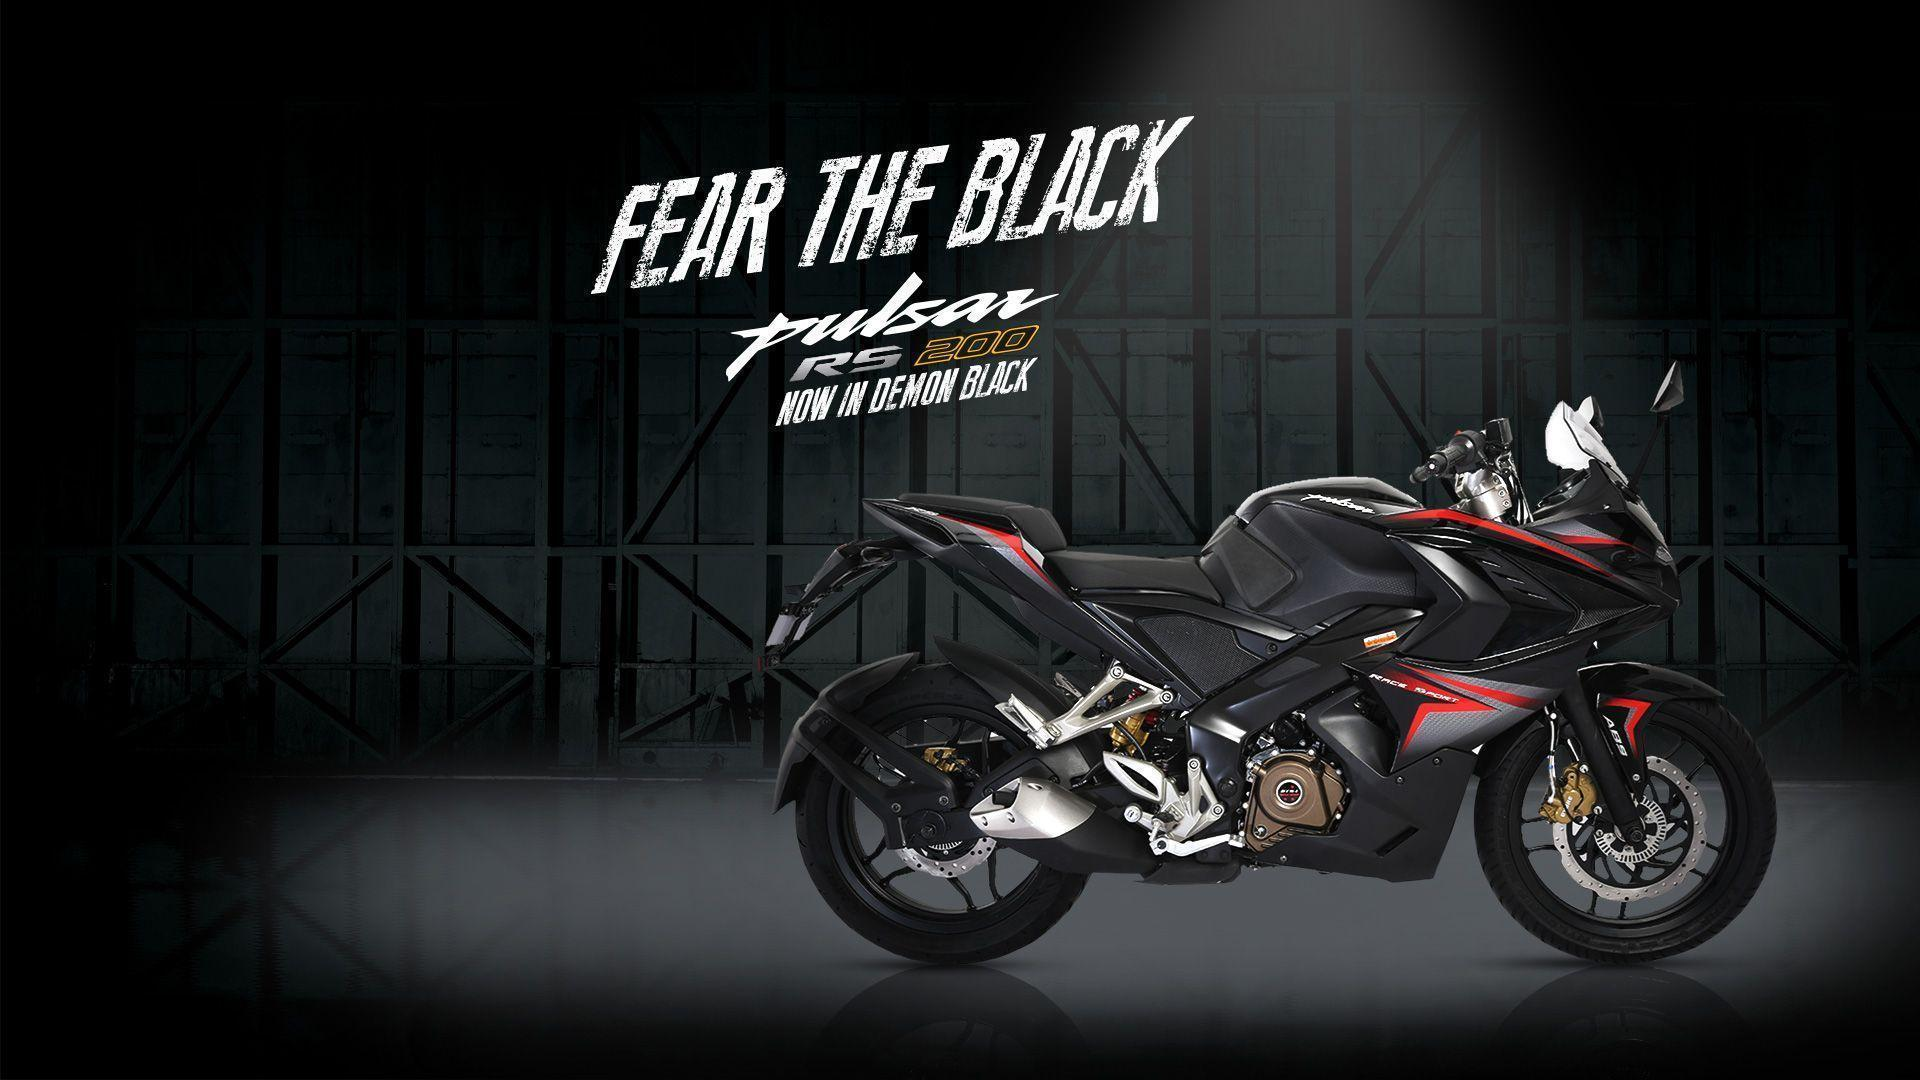 Bajaj Pulsar Rs200 Wallpapers Wallpaper Cave